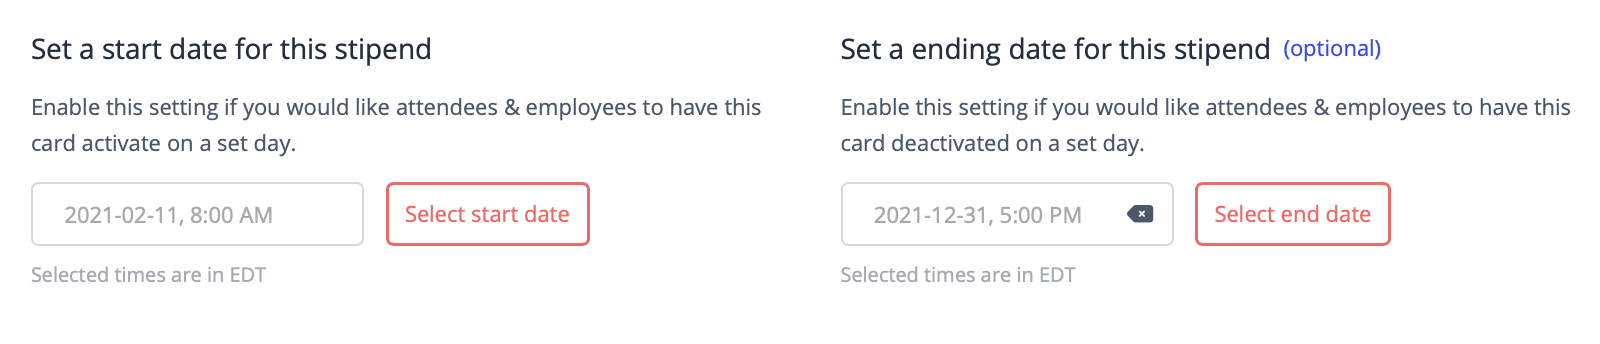 Start and end date for a virtual credit card program